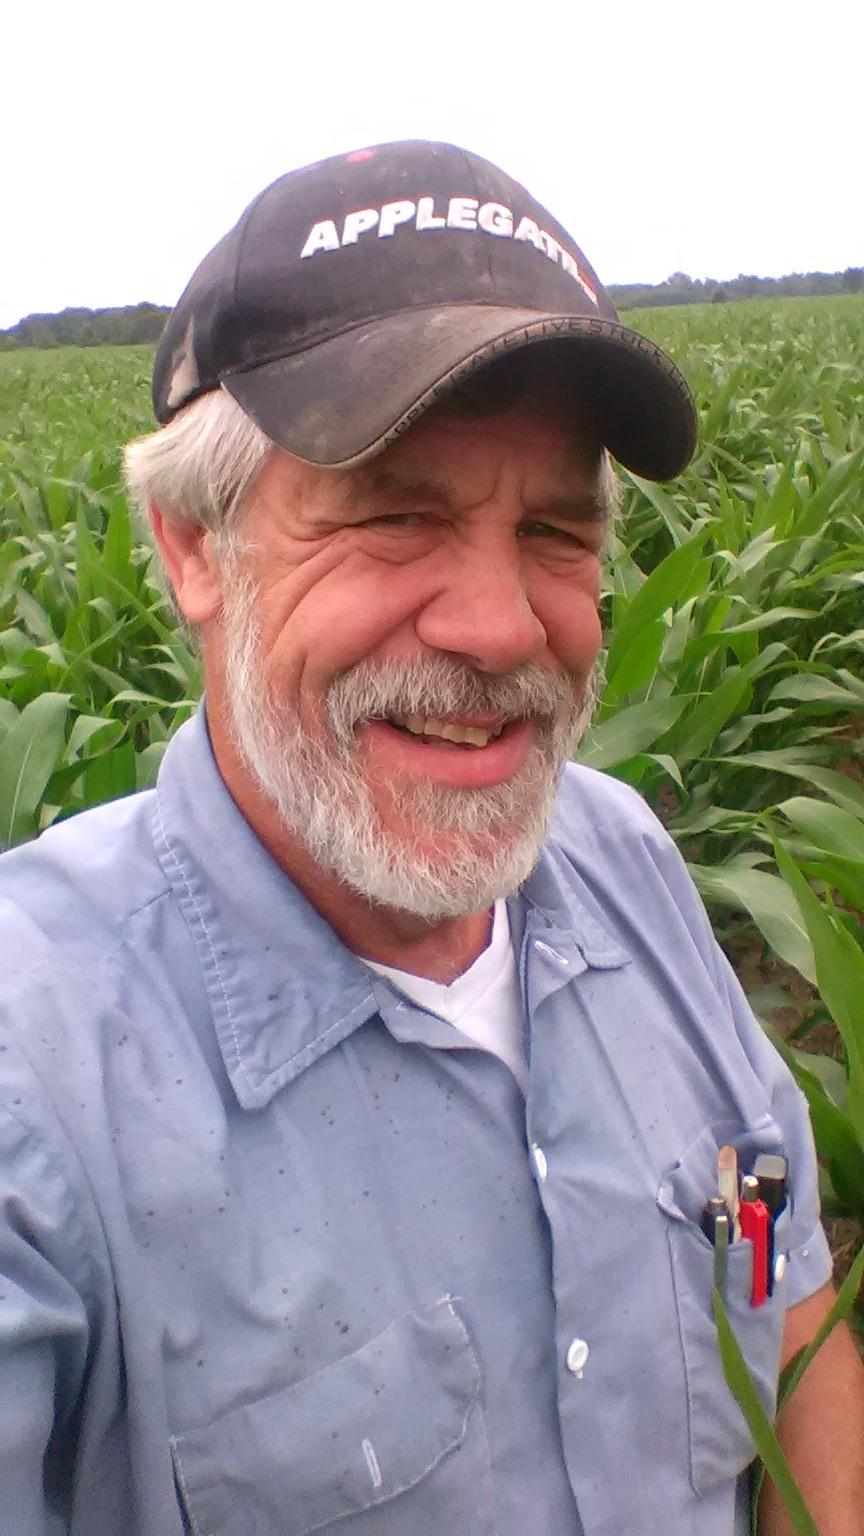 Chris Gibbs is hoping to help his fellow farmers by considering a run for Congress. (Photo: Chris Gibbs)